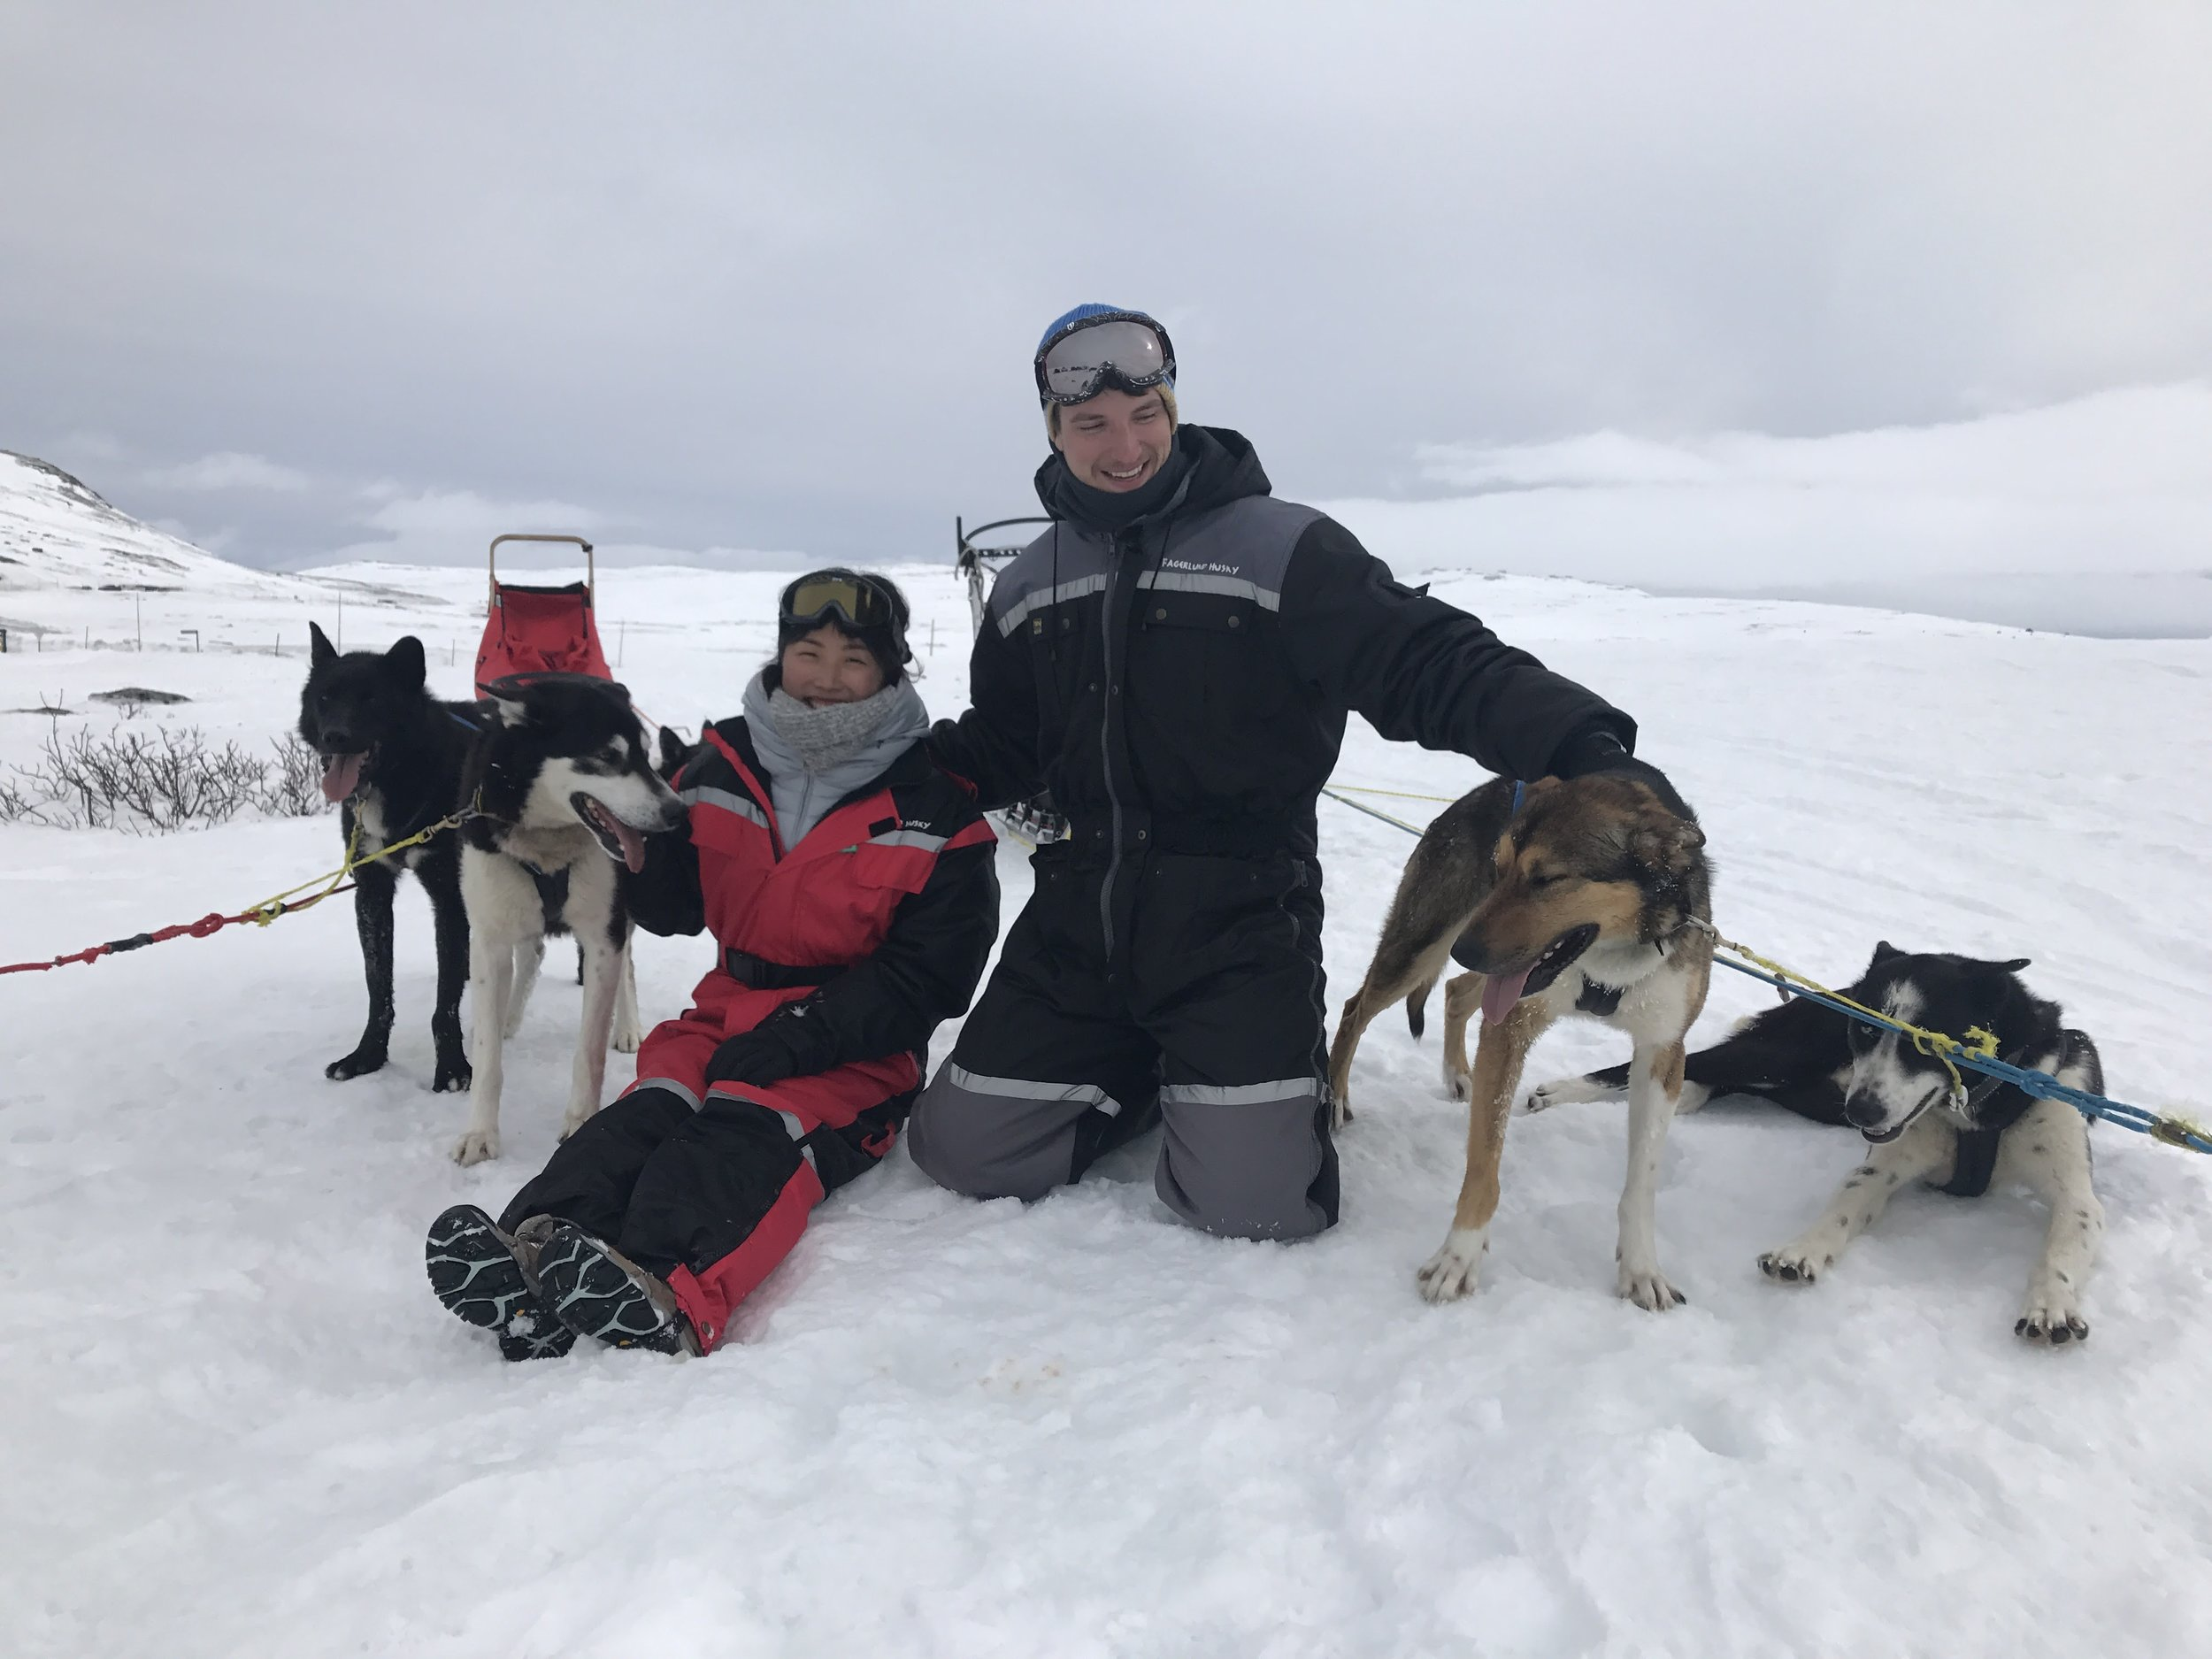 Geilo, Norway2017 - Dogsledding through the barren ice plateaus of Norway was hands down, the most epic thing we've ever done. And plus, the dogs were adorable!